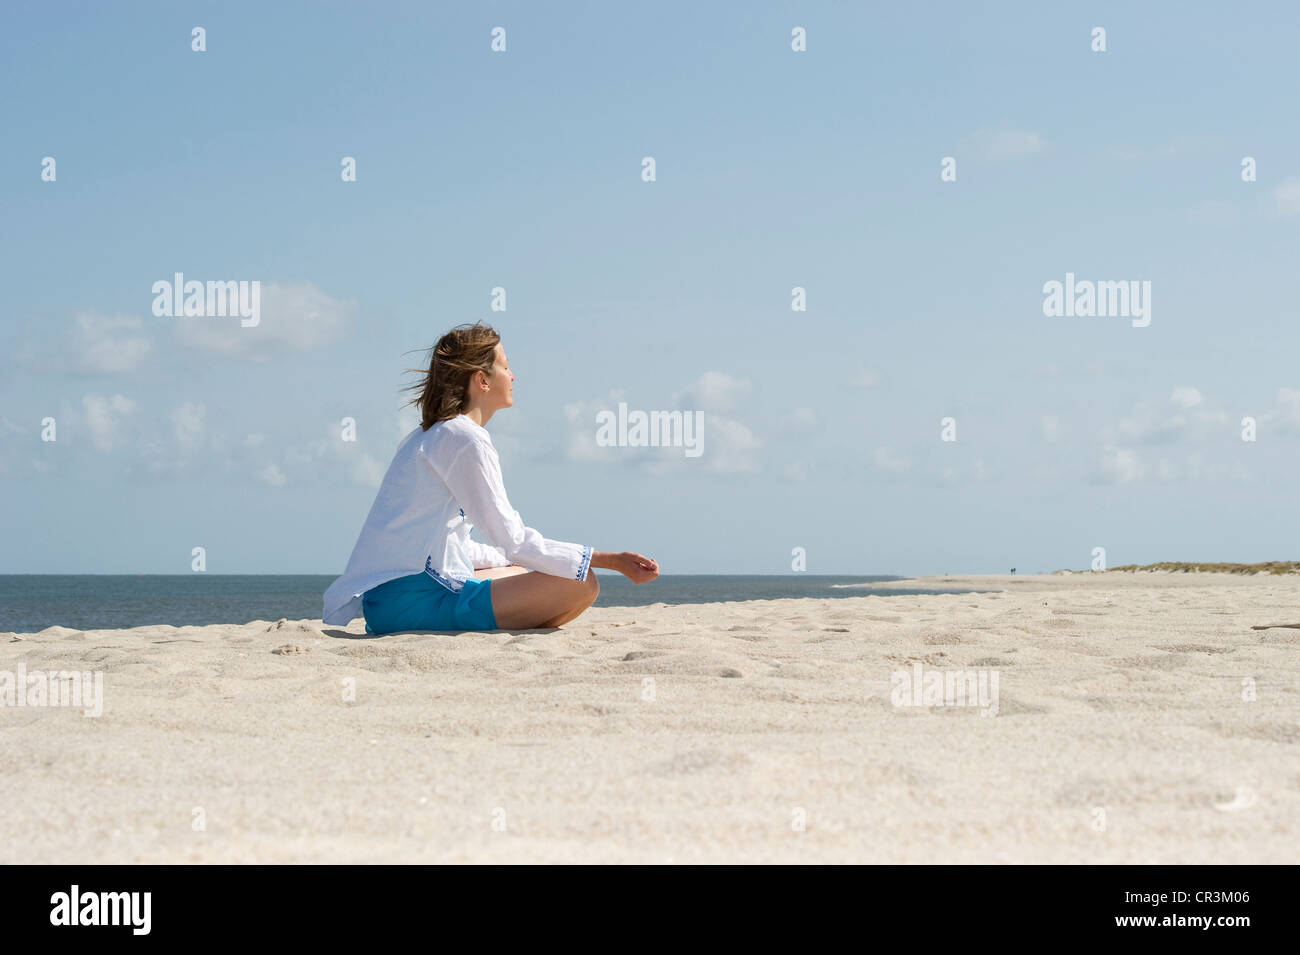 Woman on the beach, List, Sylt island, Schleswig-Holstein, Germany, Europe - Stock Image